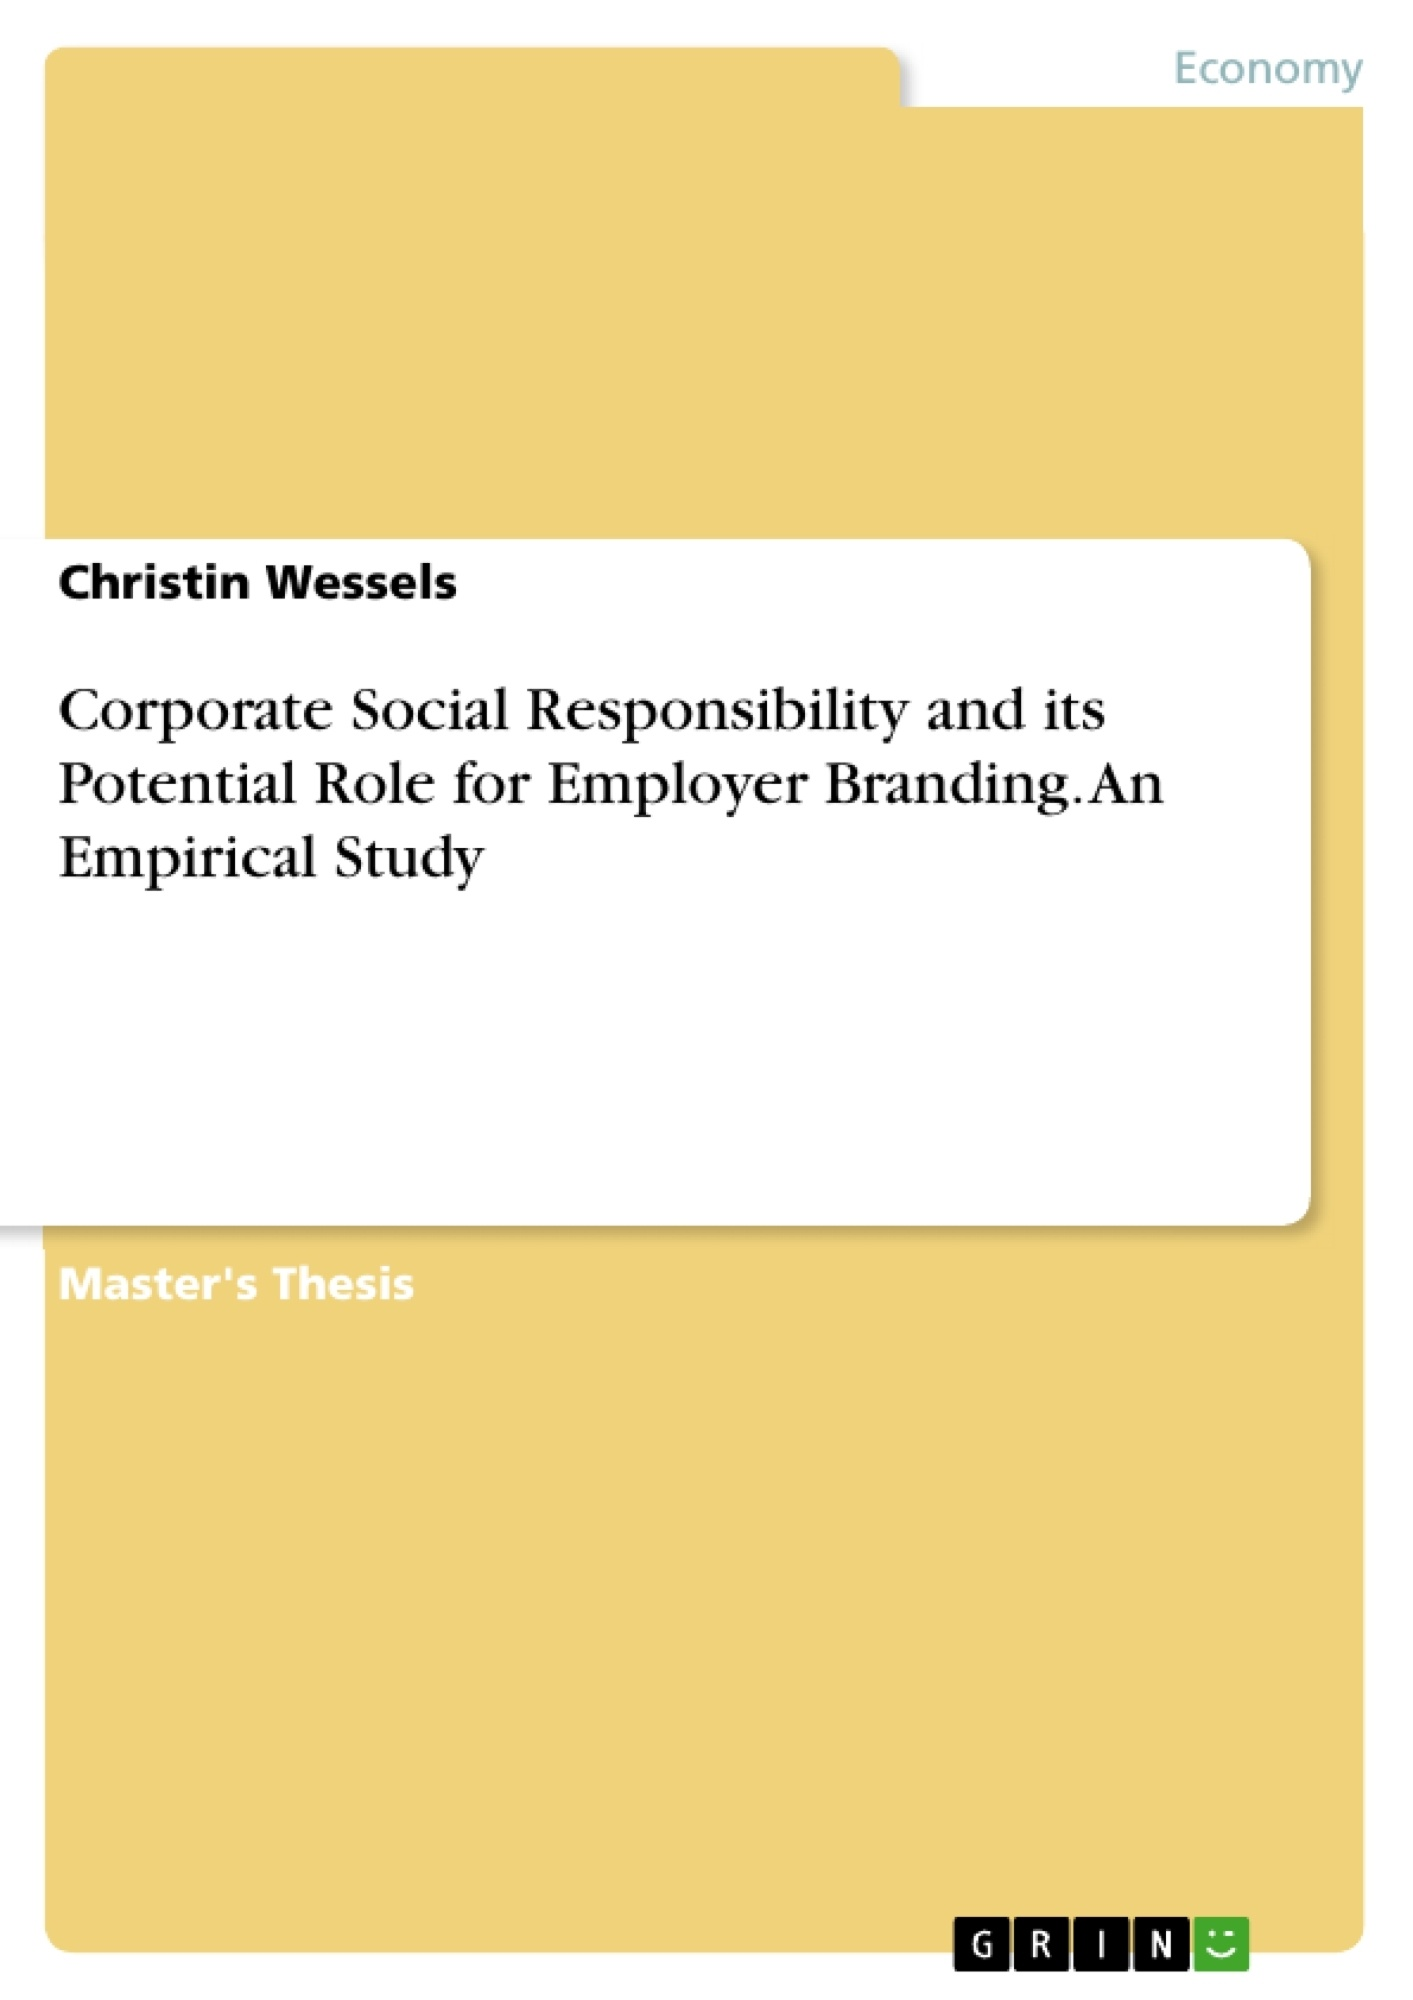 Title: Corporate Social Responsibility and its Potential Role for Employer Branding. An Empirical Study